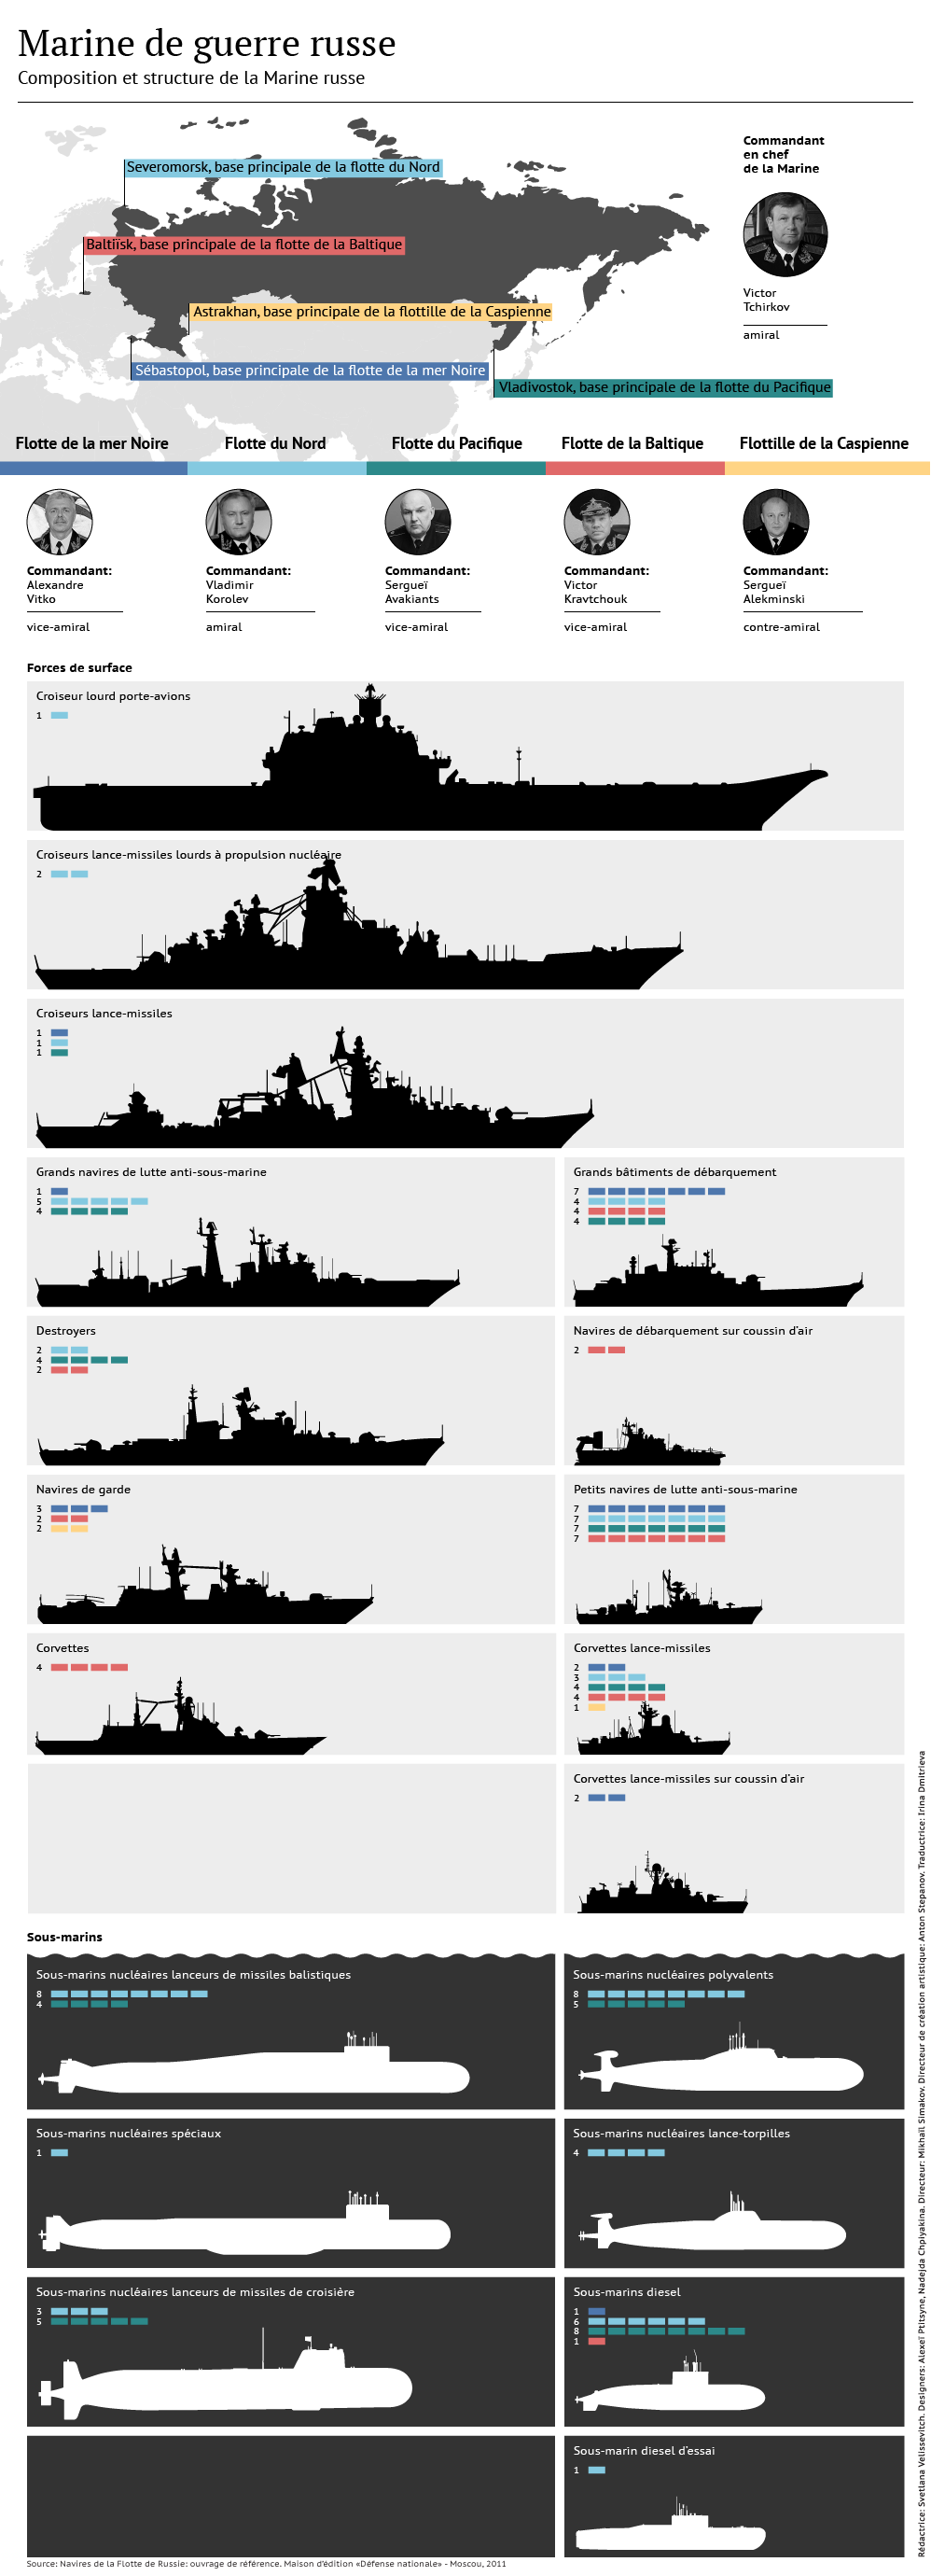 Marine russe: composition et armements